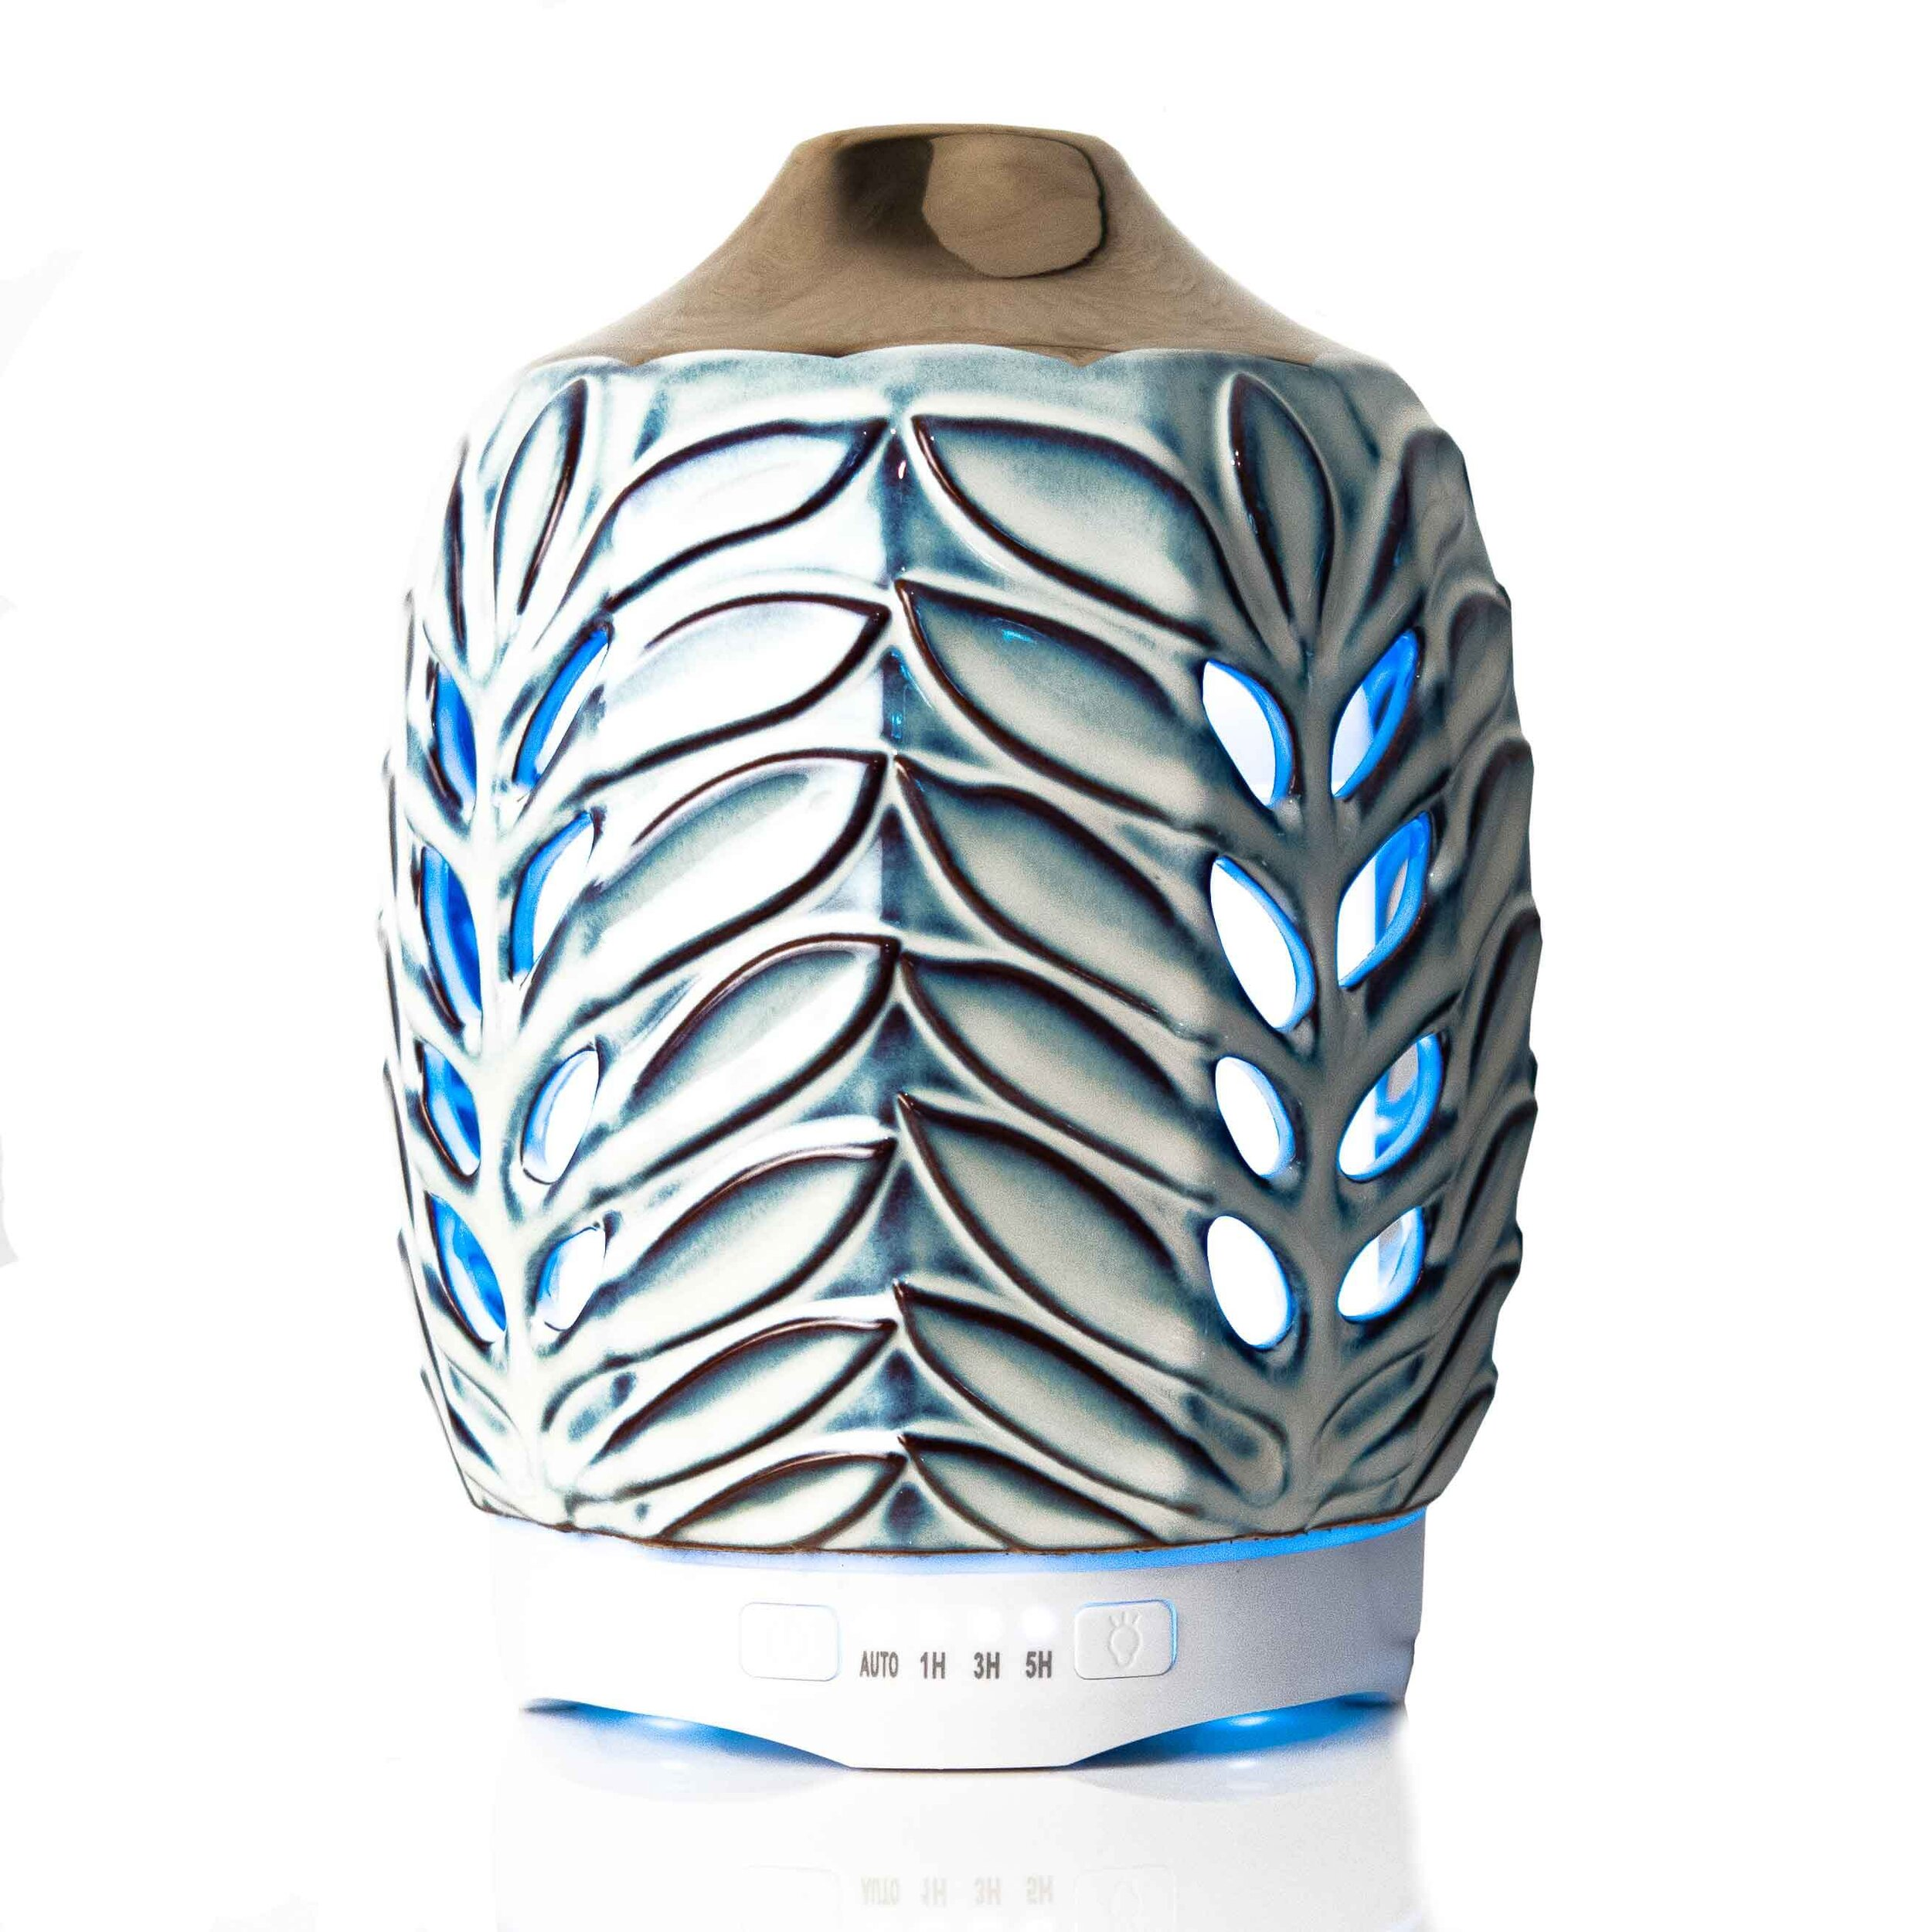 Leaf Design Colour Changing Aroma Humidifier Lp45738 Project Scent